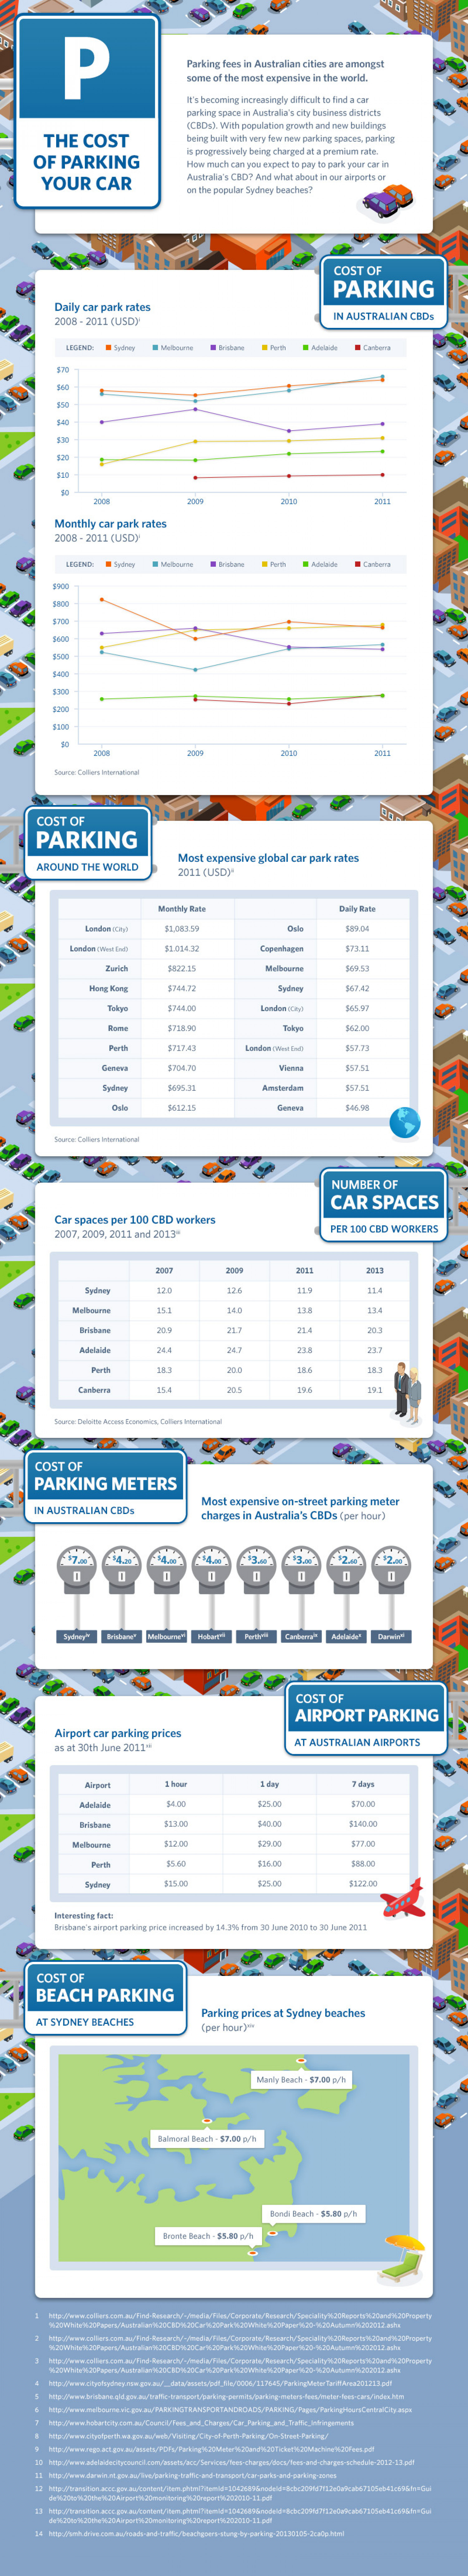 The cost of parking your car Infographic